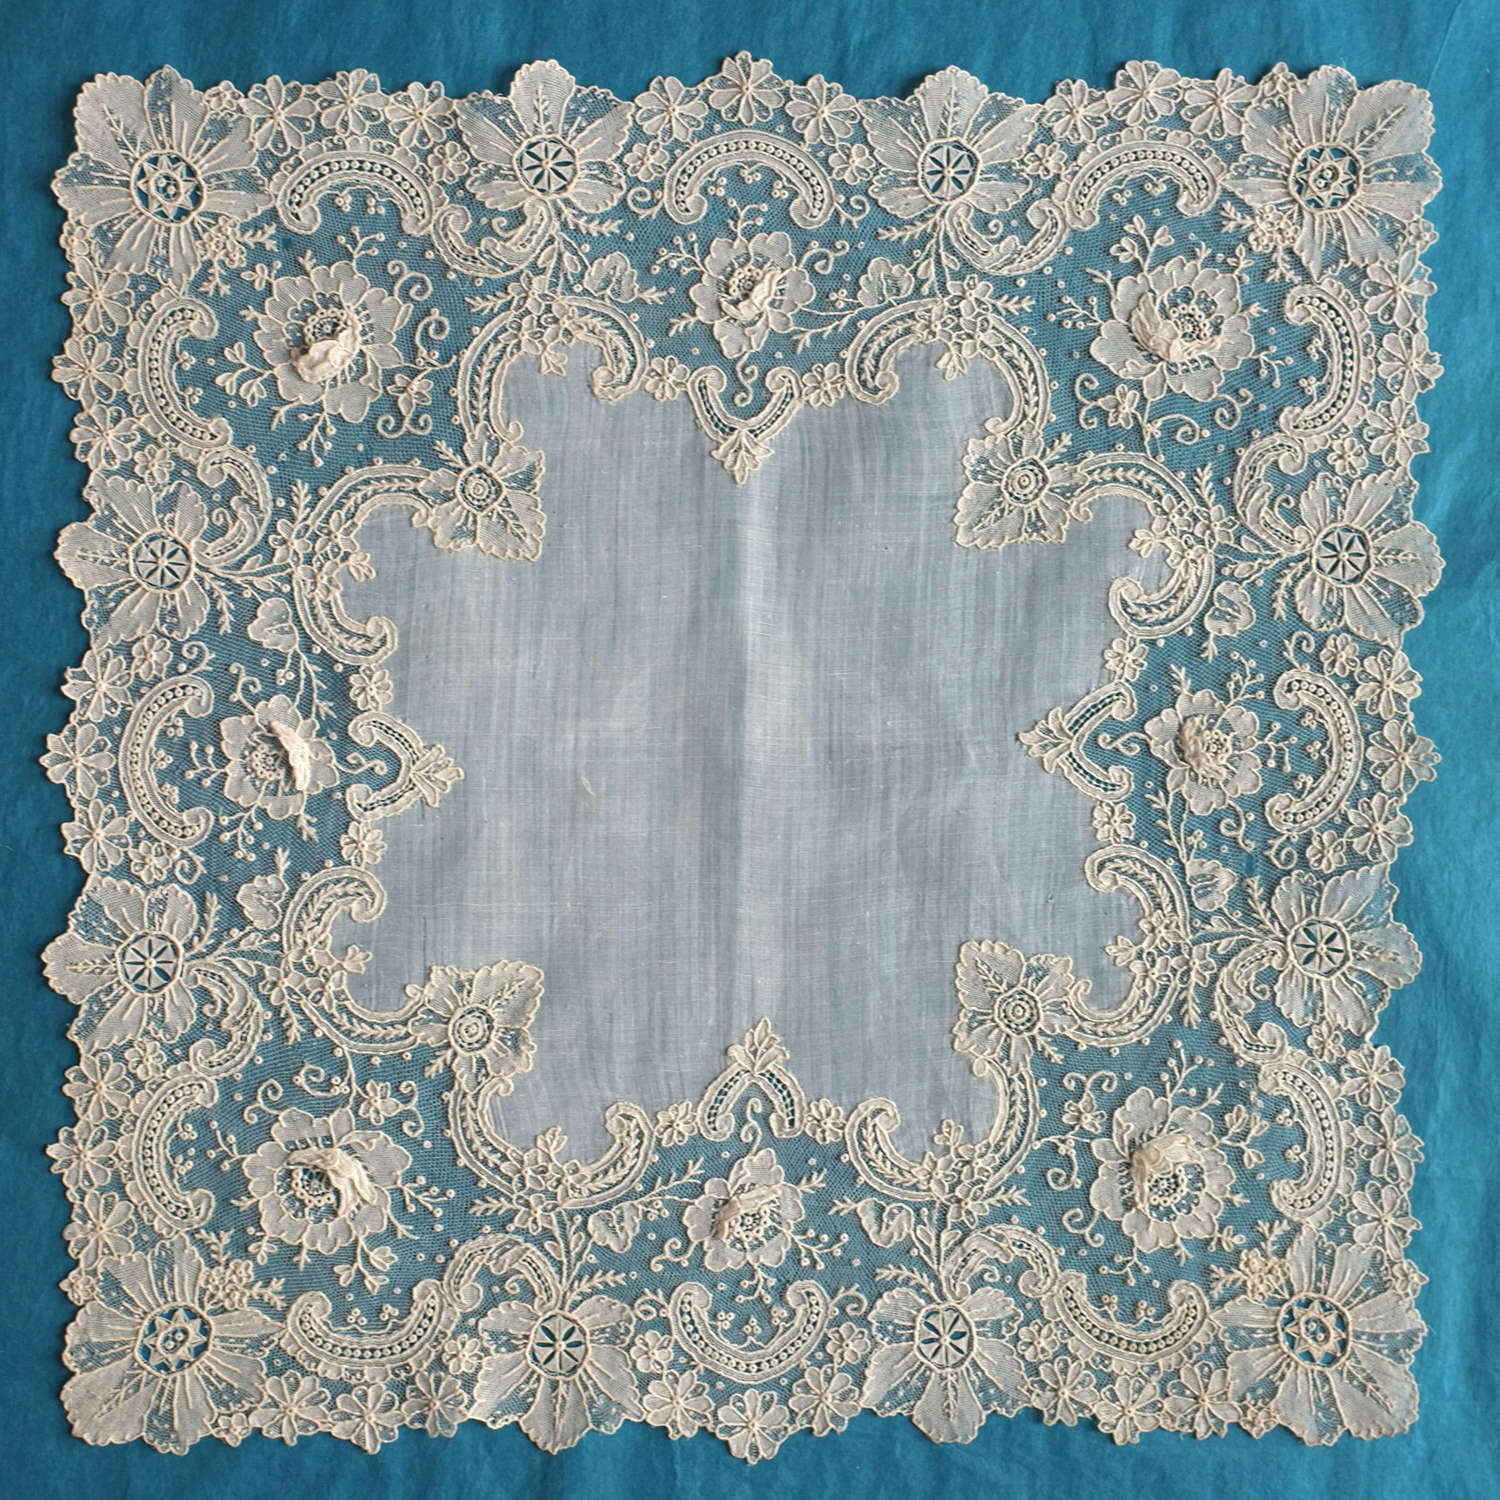 Antique Brussels Point de Gaze Lace Handkerchief